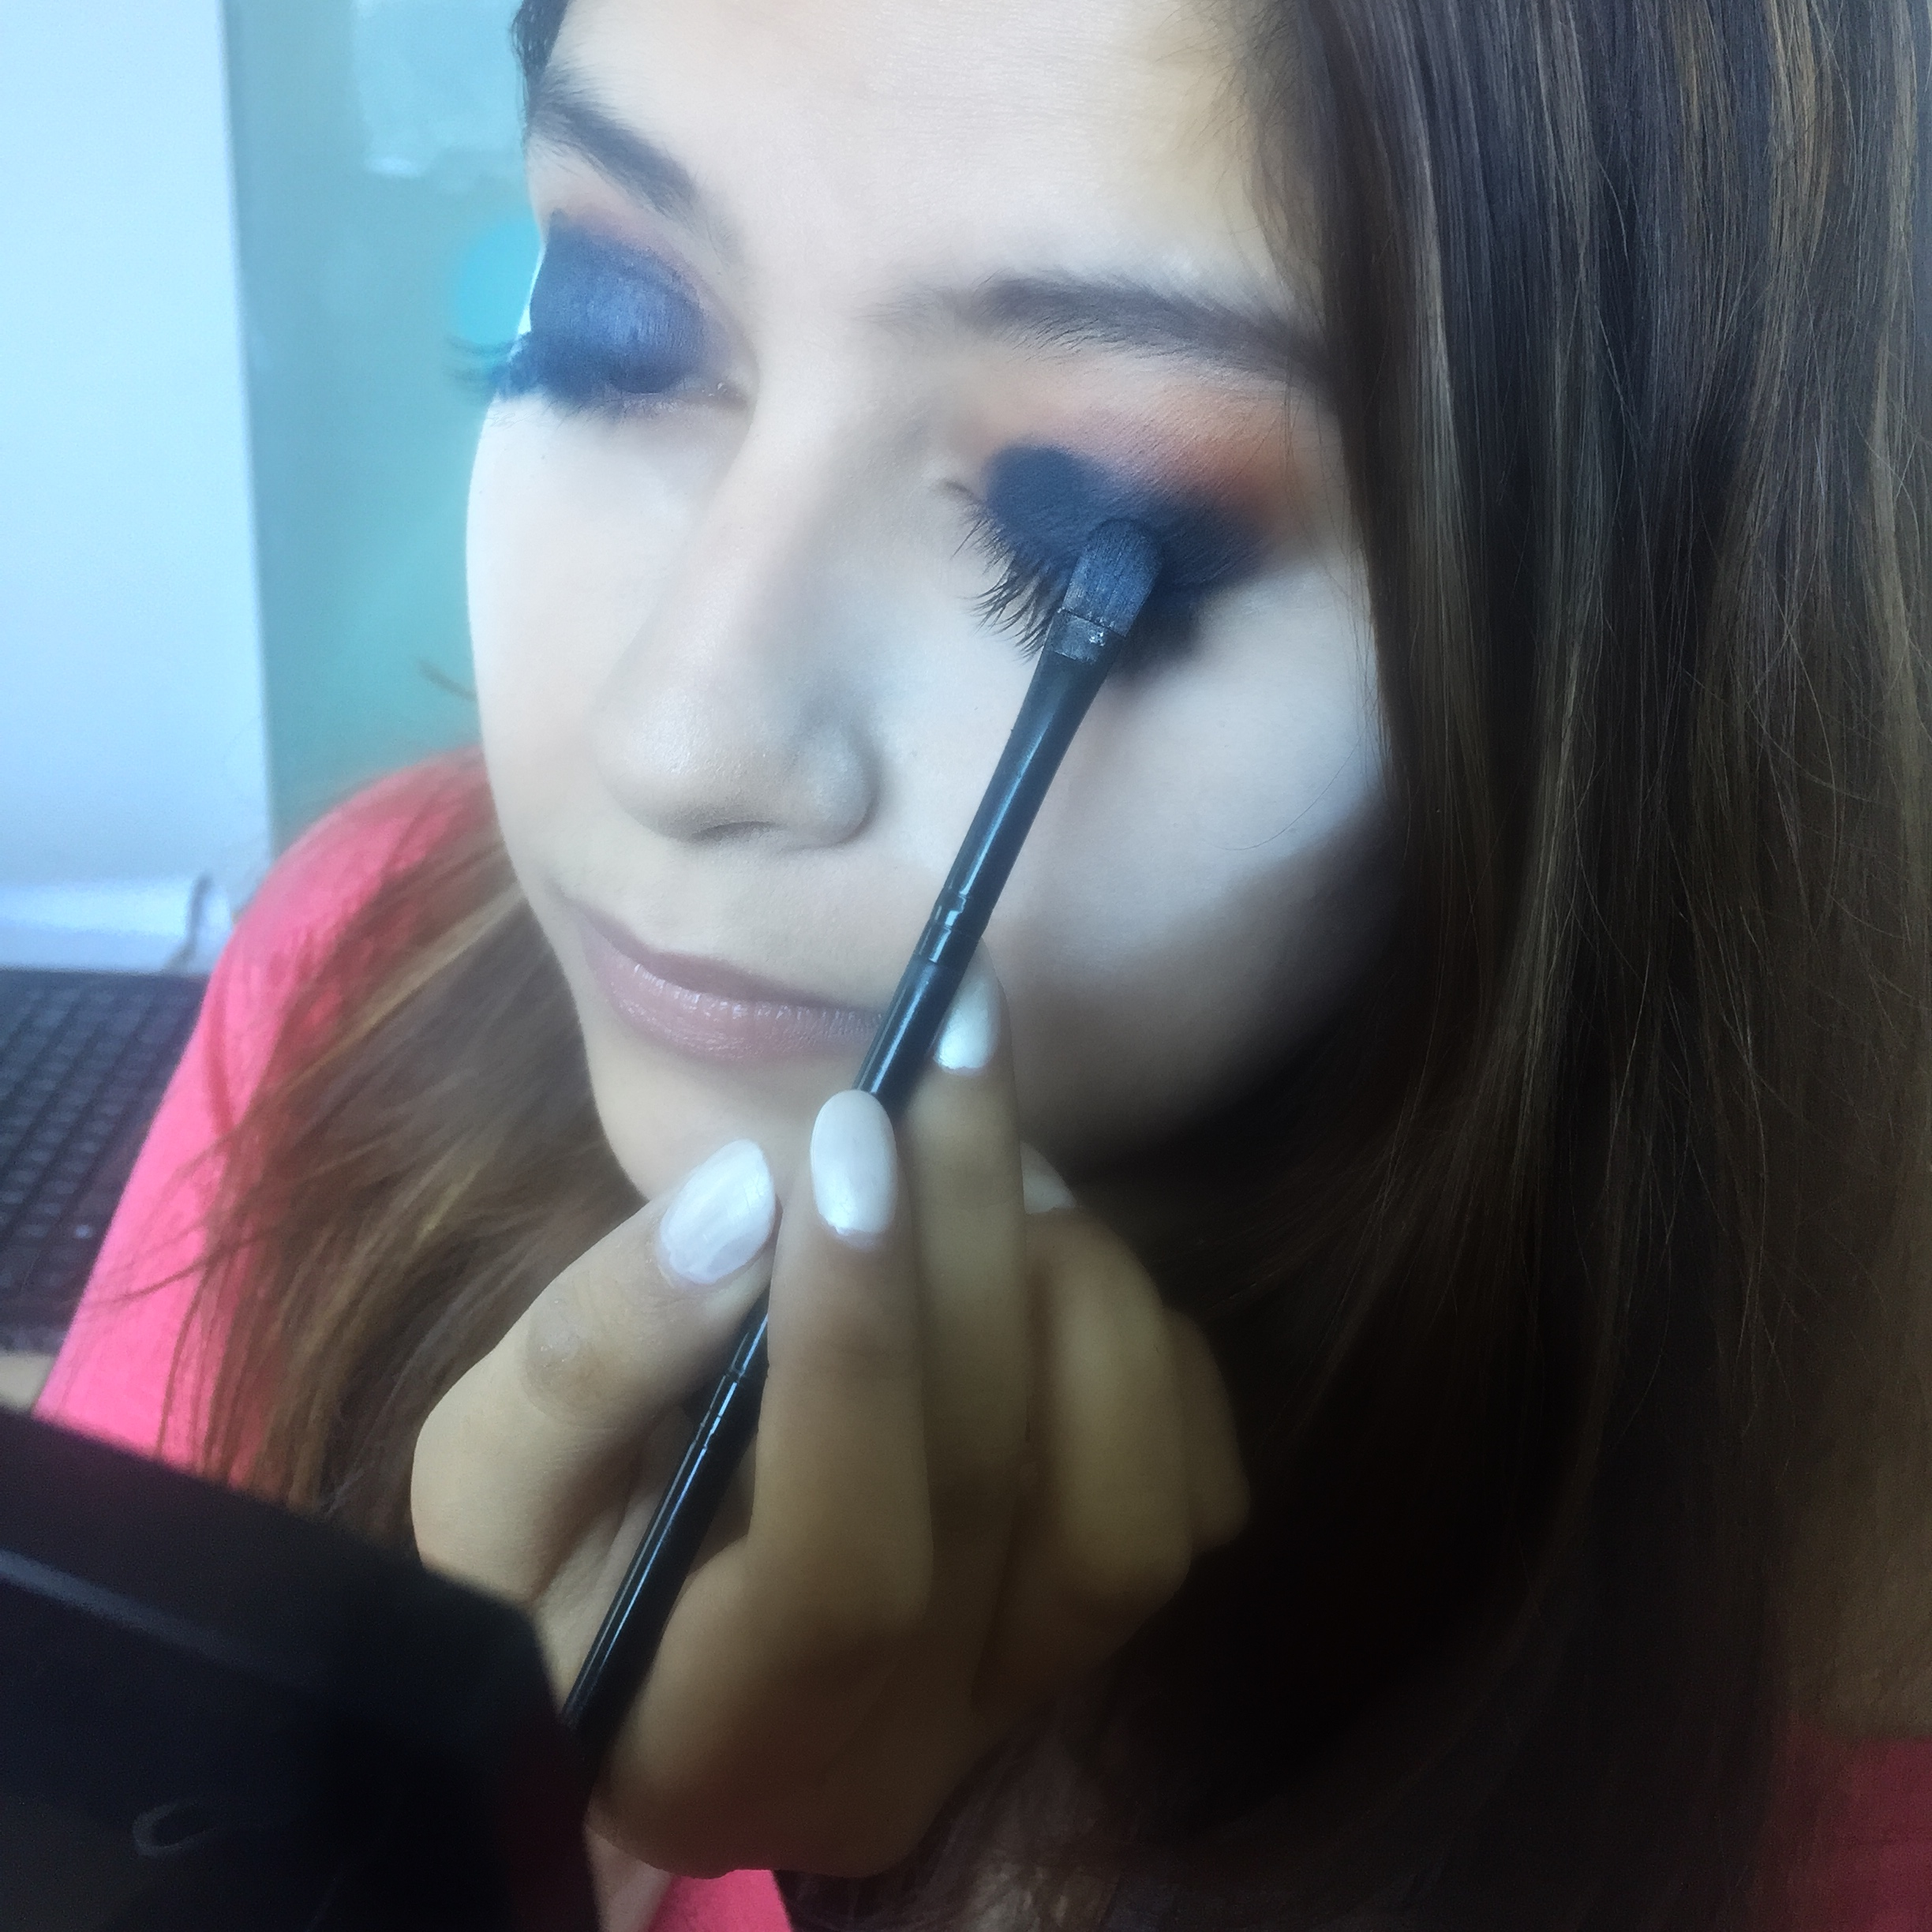 5. smokey eye makeup